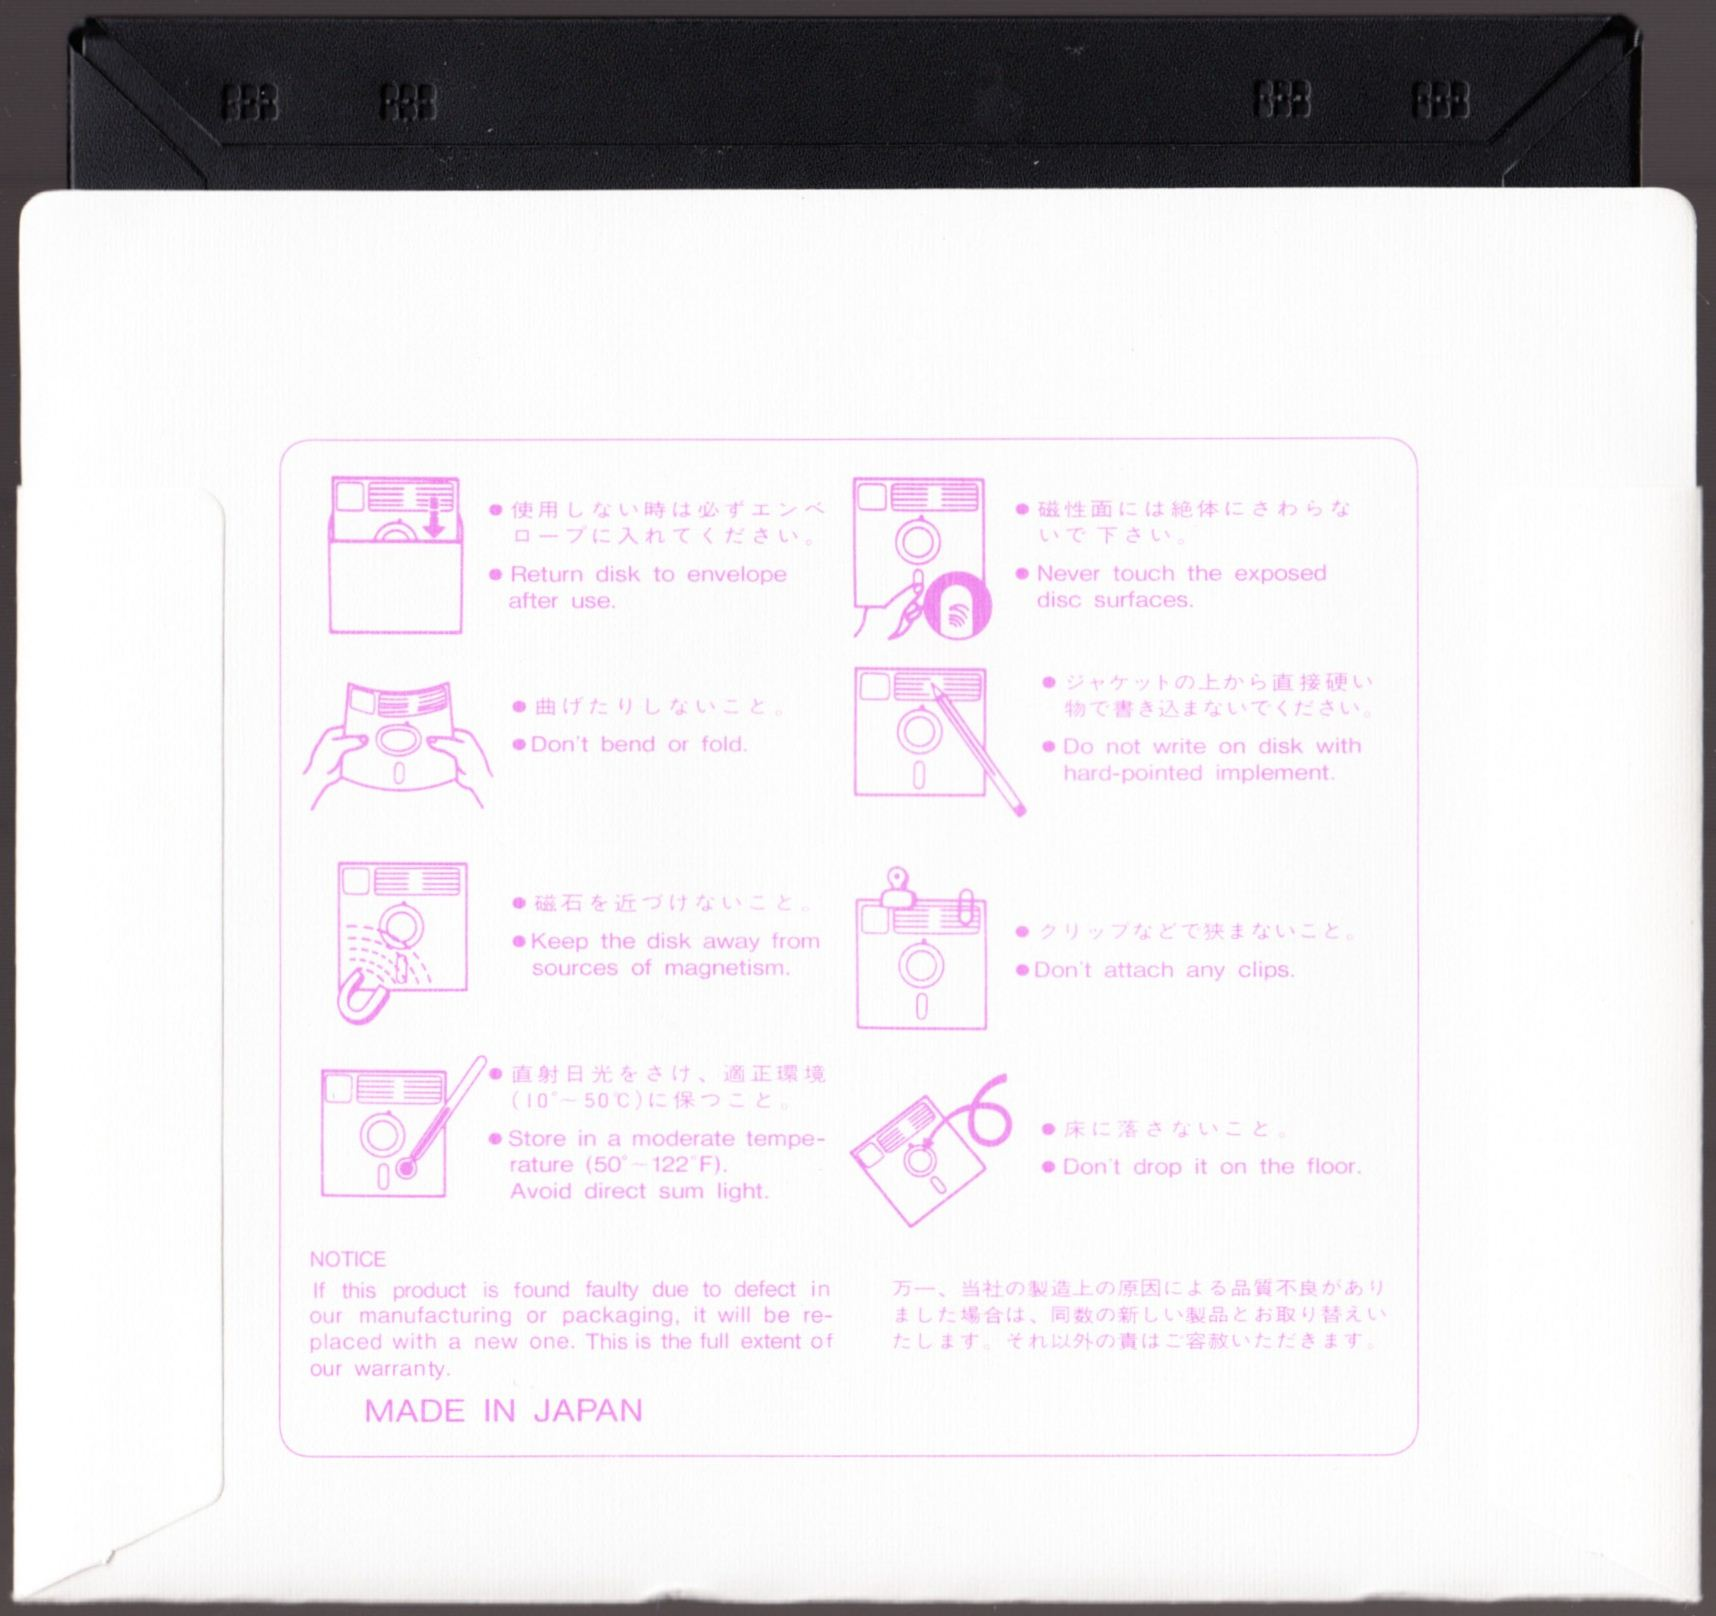 Game - Dungeon Master II - JP - PC-9801 - 5.25-inch - Disk D Save Disk - Back - Scan